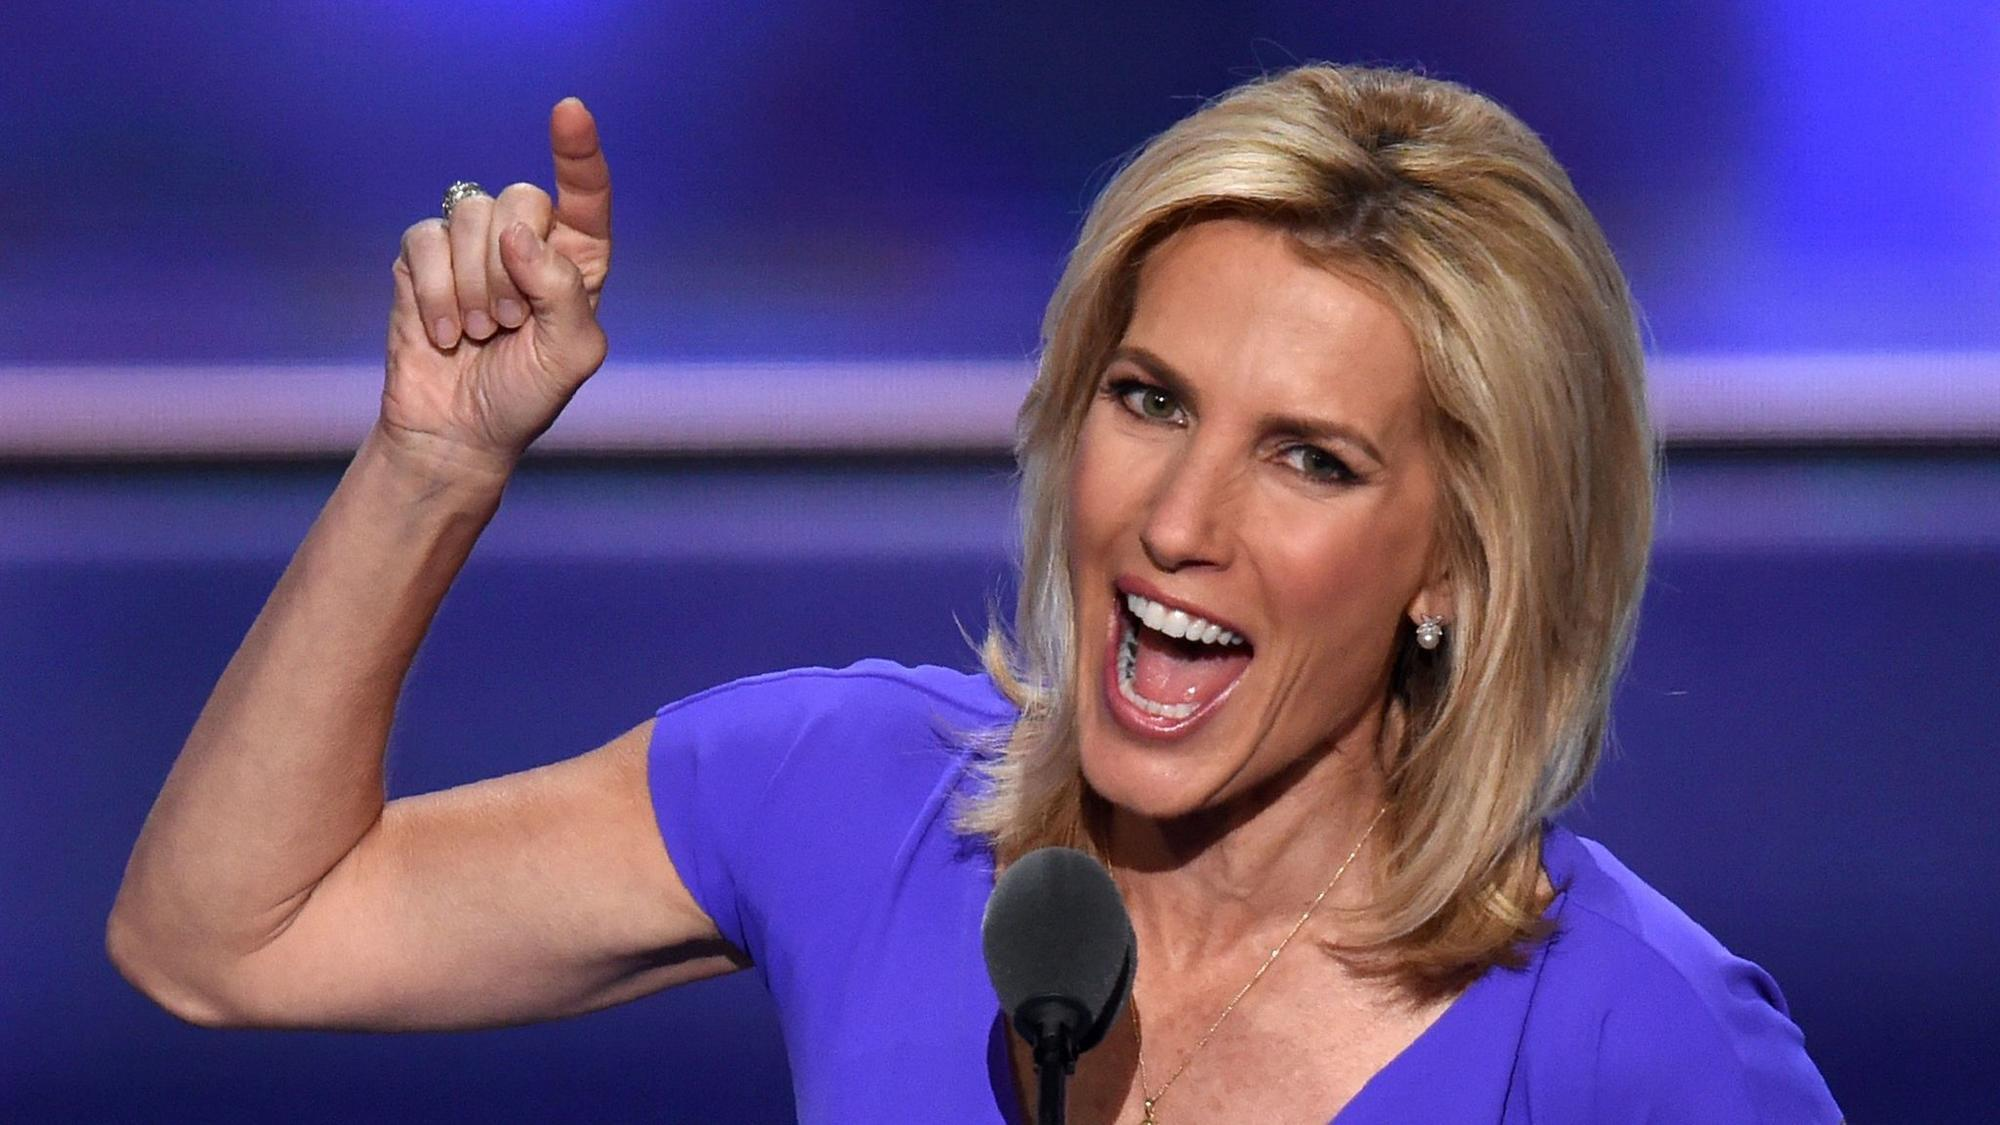 fl-florida-school-shooting-laura-ingraham-20180329.jpg